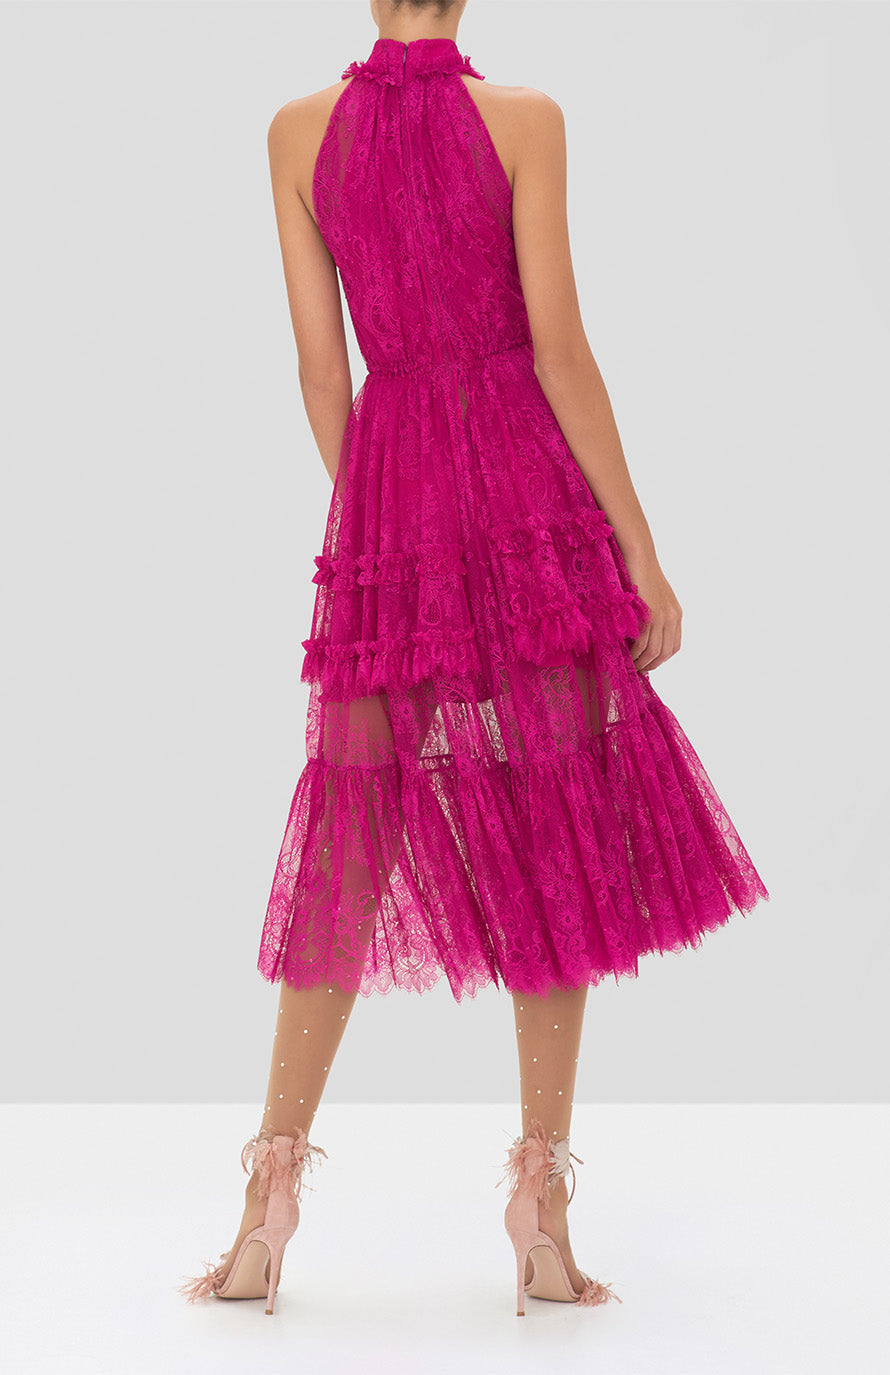 Alexis Magdalina Dress in Fuchsia from the Holiday 2019 Ready To Wear Collection - Rear View